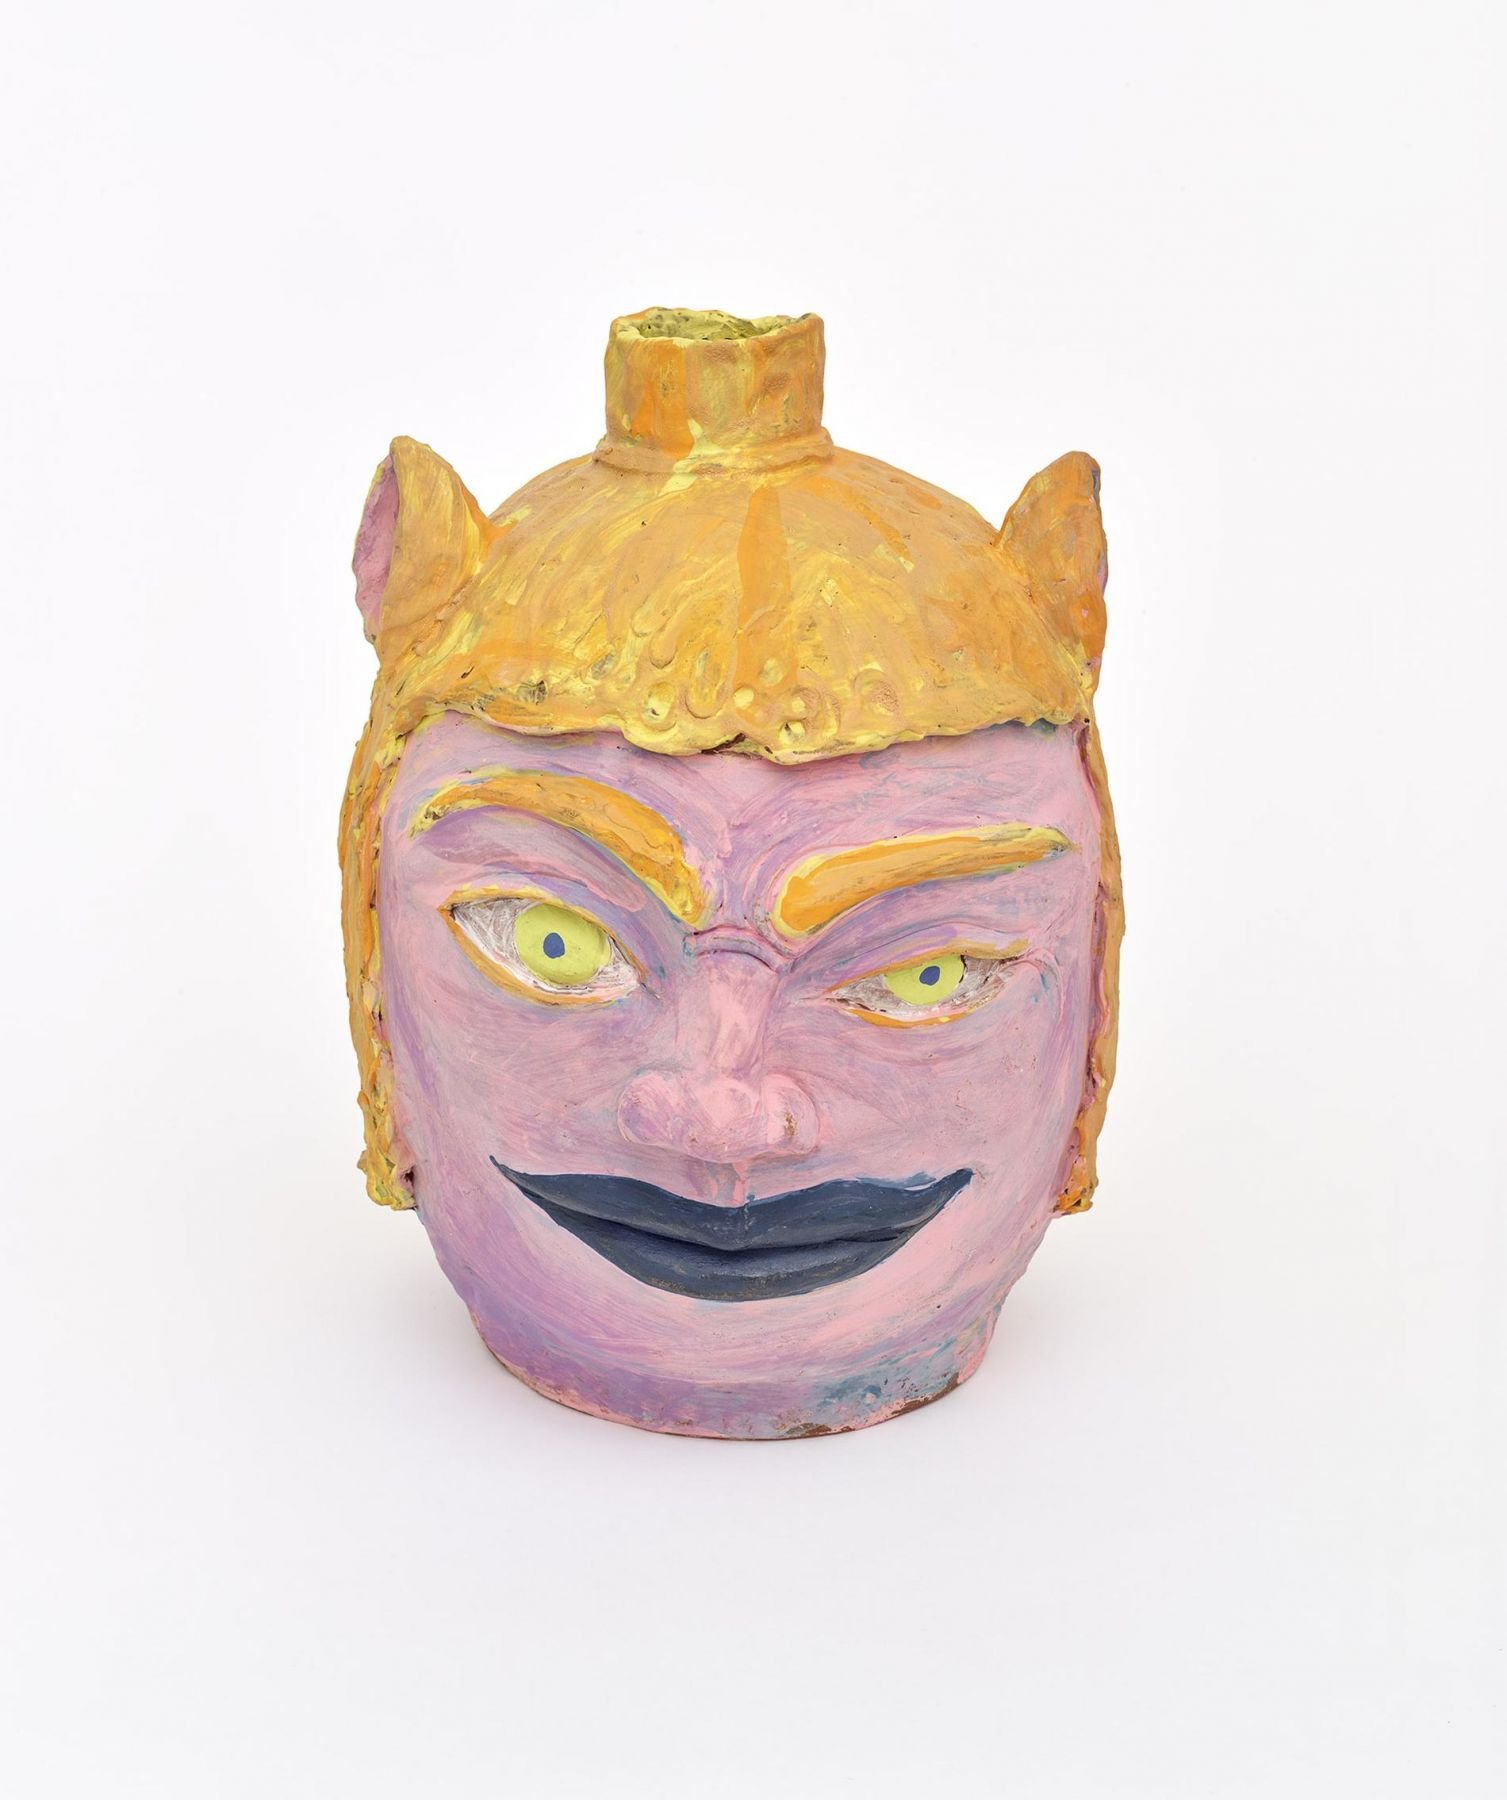 , Kat, 2008, Earthenware and colored slips and glazes, 16 1/2 x 12 x 14 in.